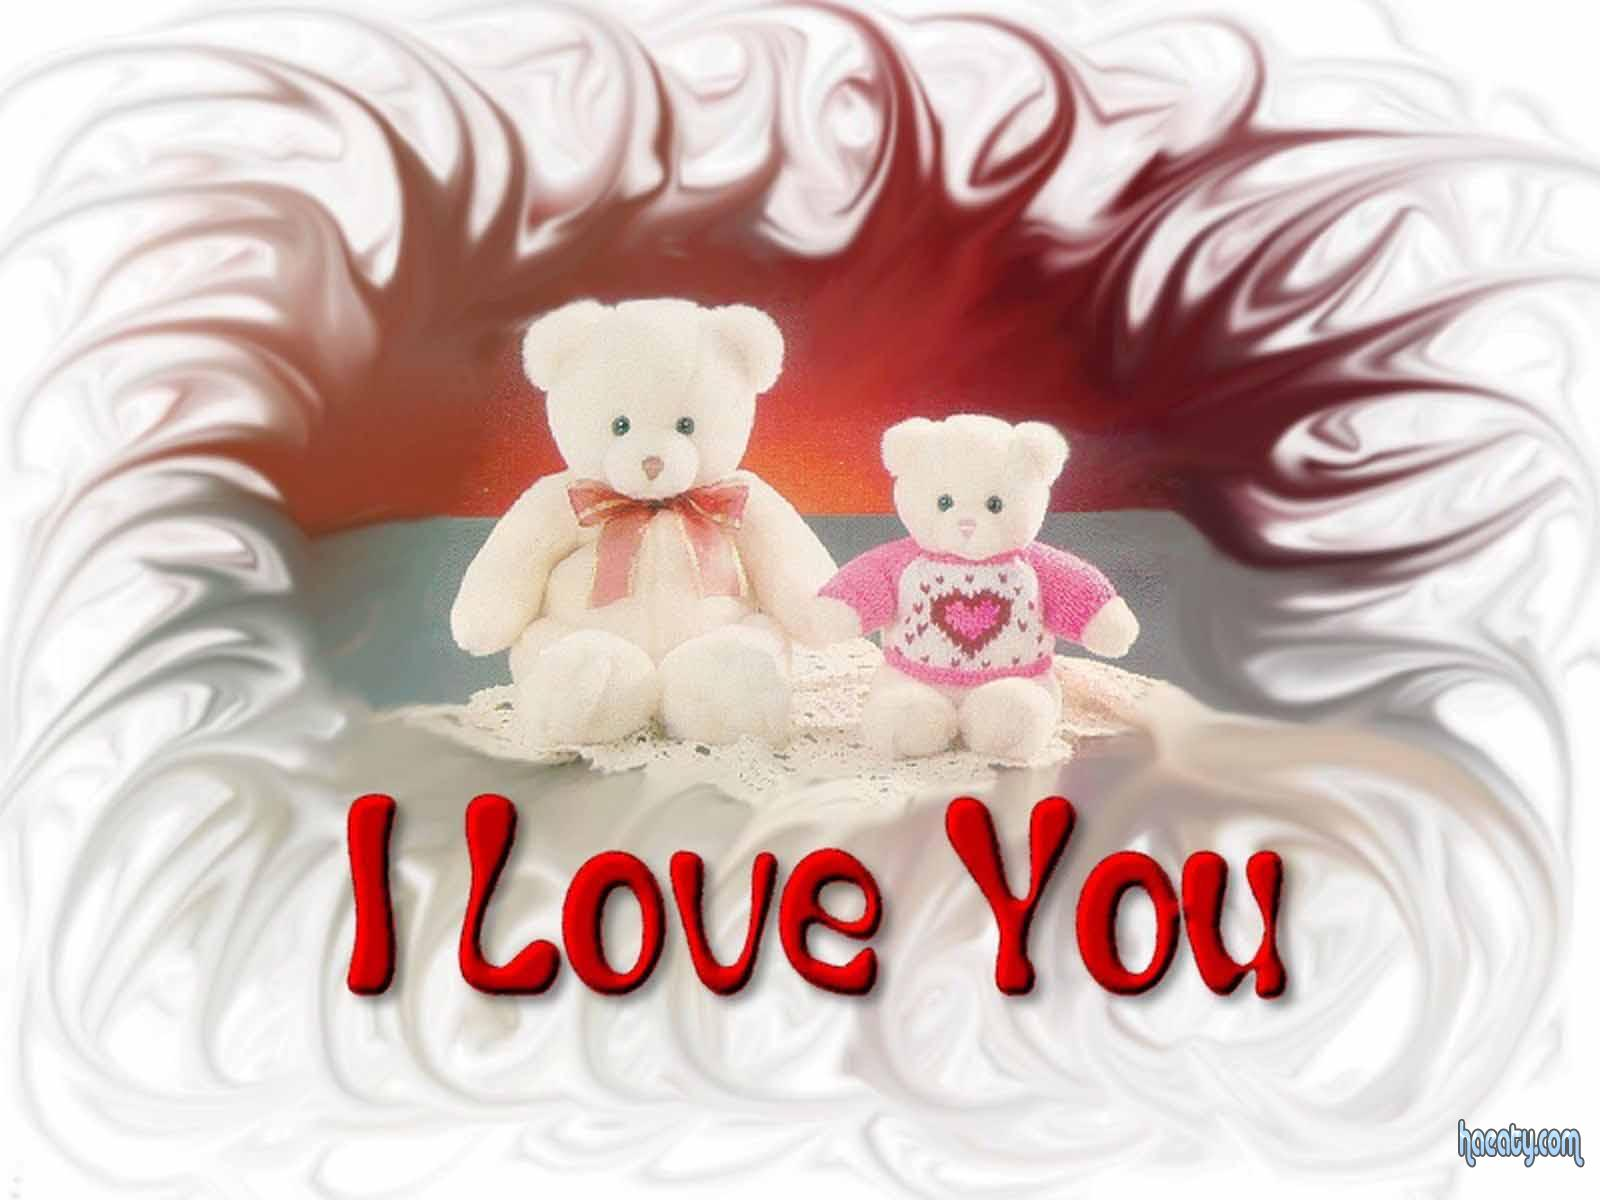 I Love U Jyoti Wallpaper : ?????? ????? ????? ilove you ?????????2017